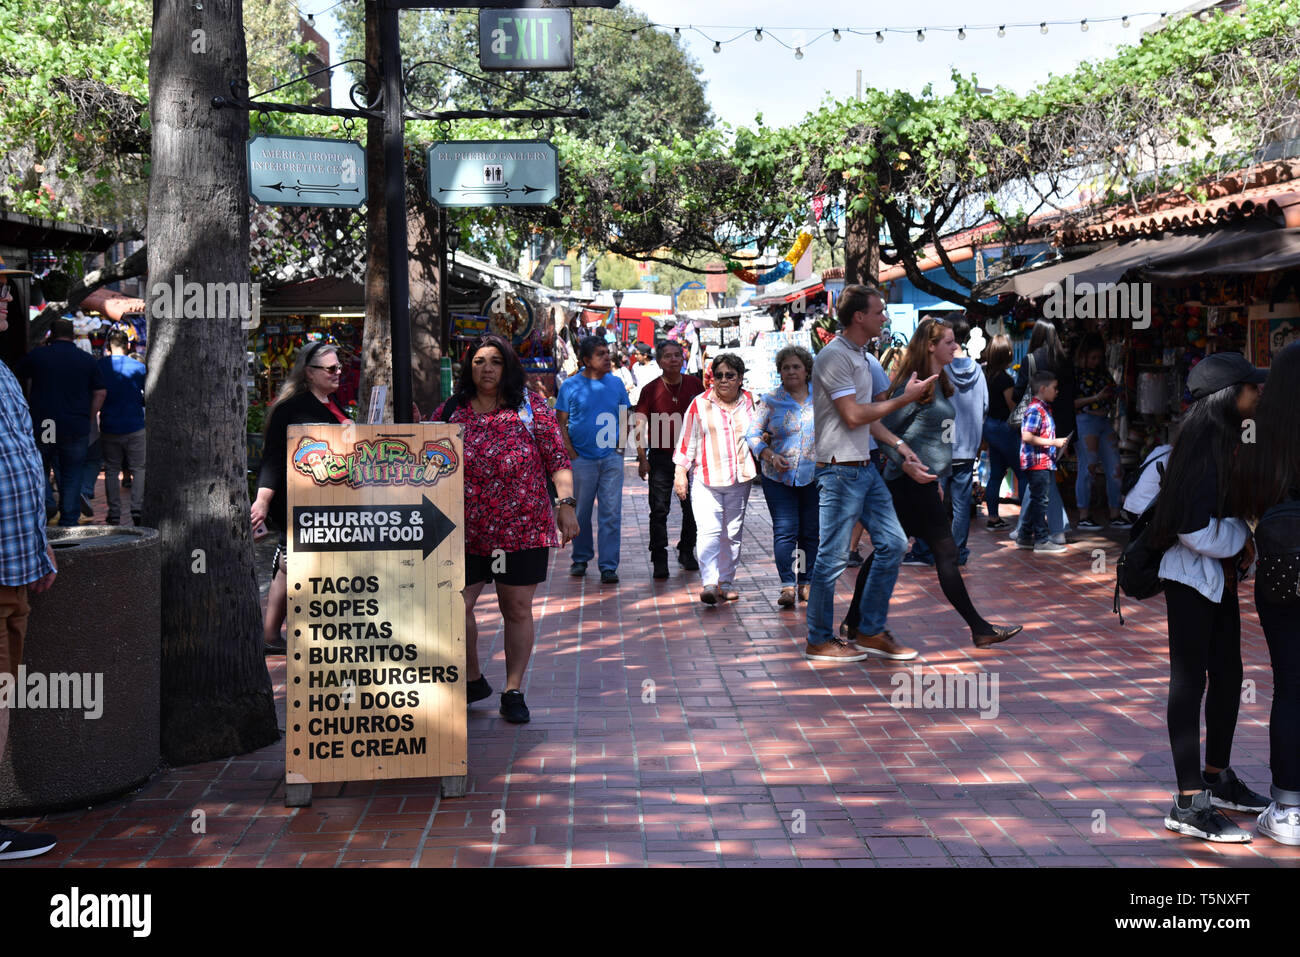 LOS ANGELES, CA/USA  - APRIL 14, 2019: Artisan booths on Olvera Street, an area considered to be the birthplace of Los Angeles - Stock Image